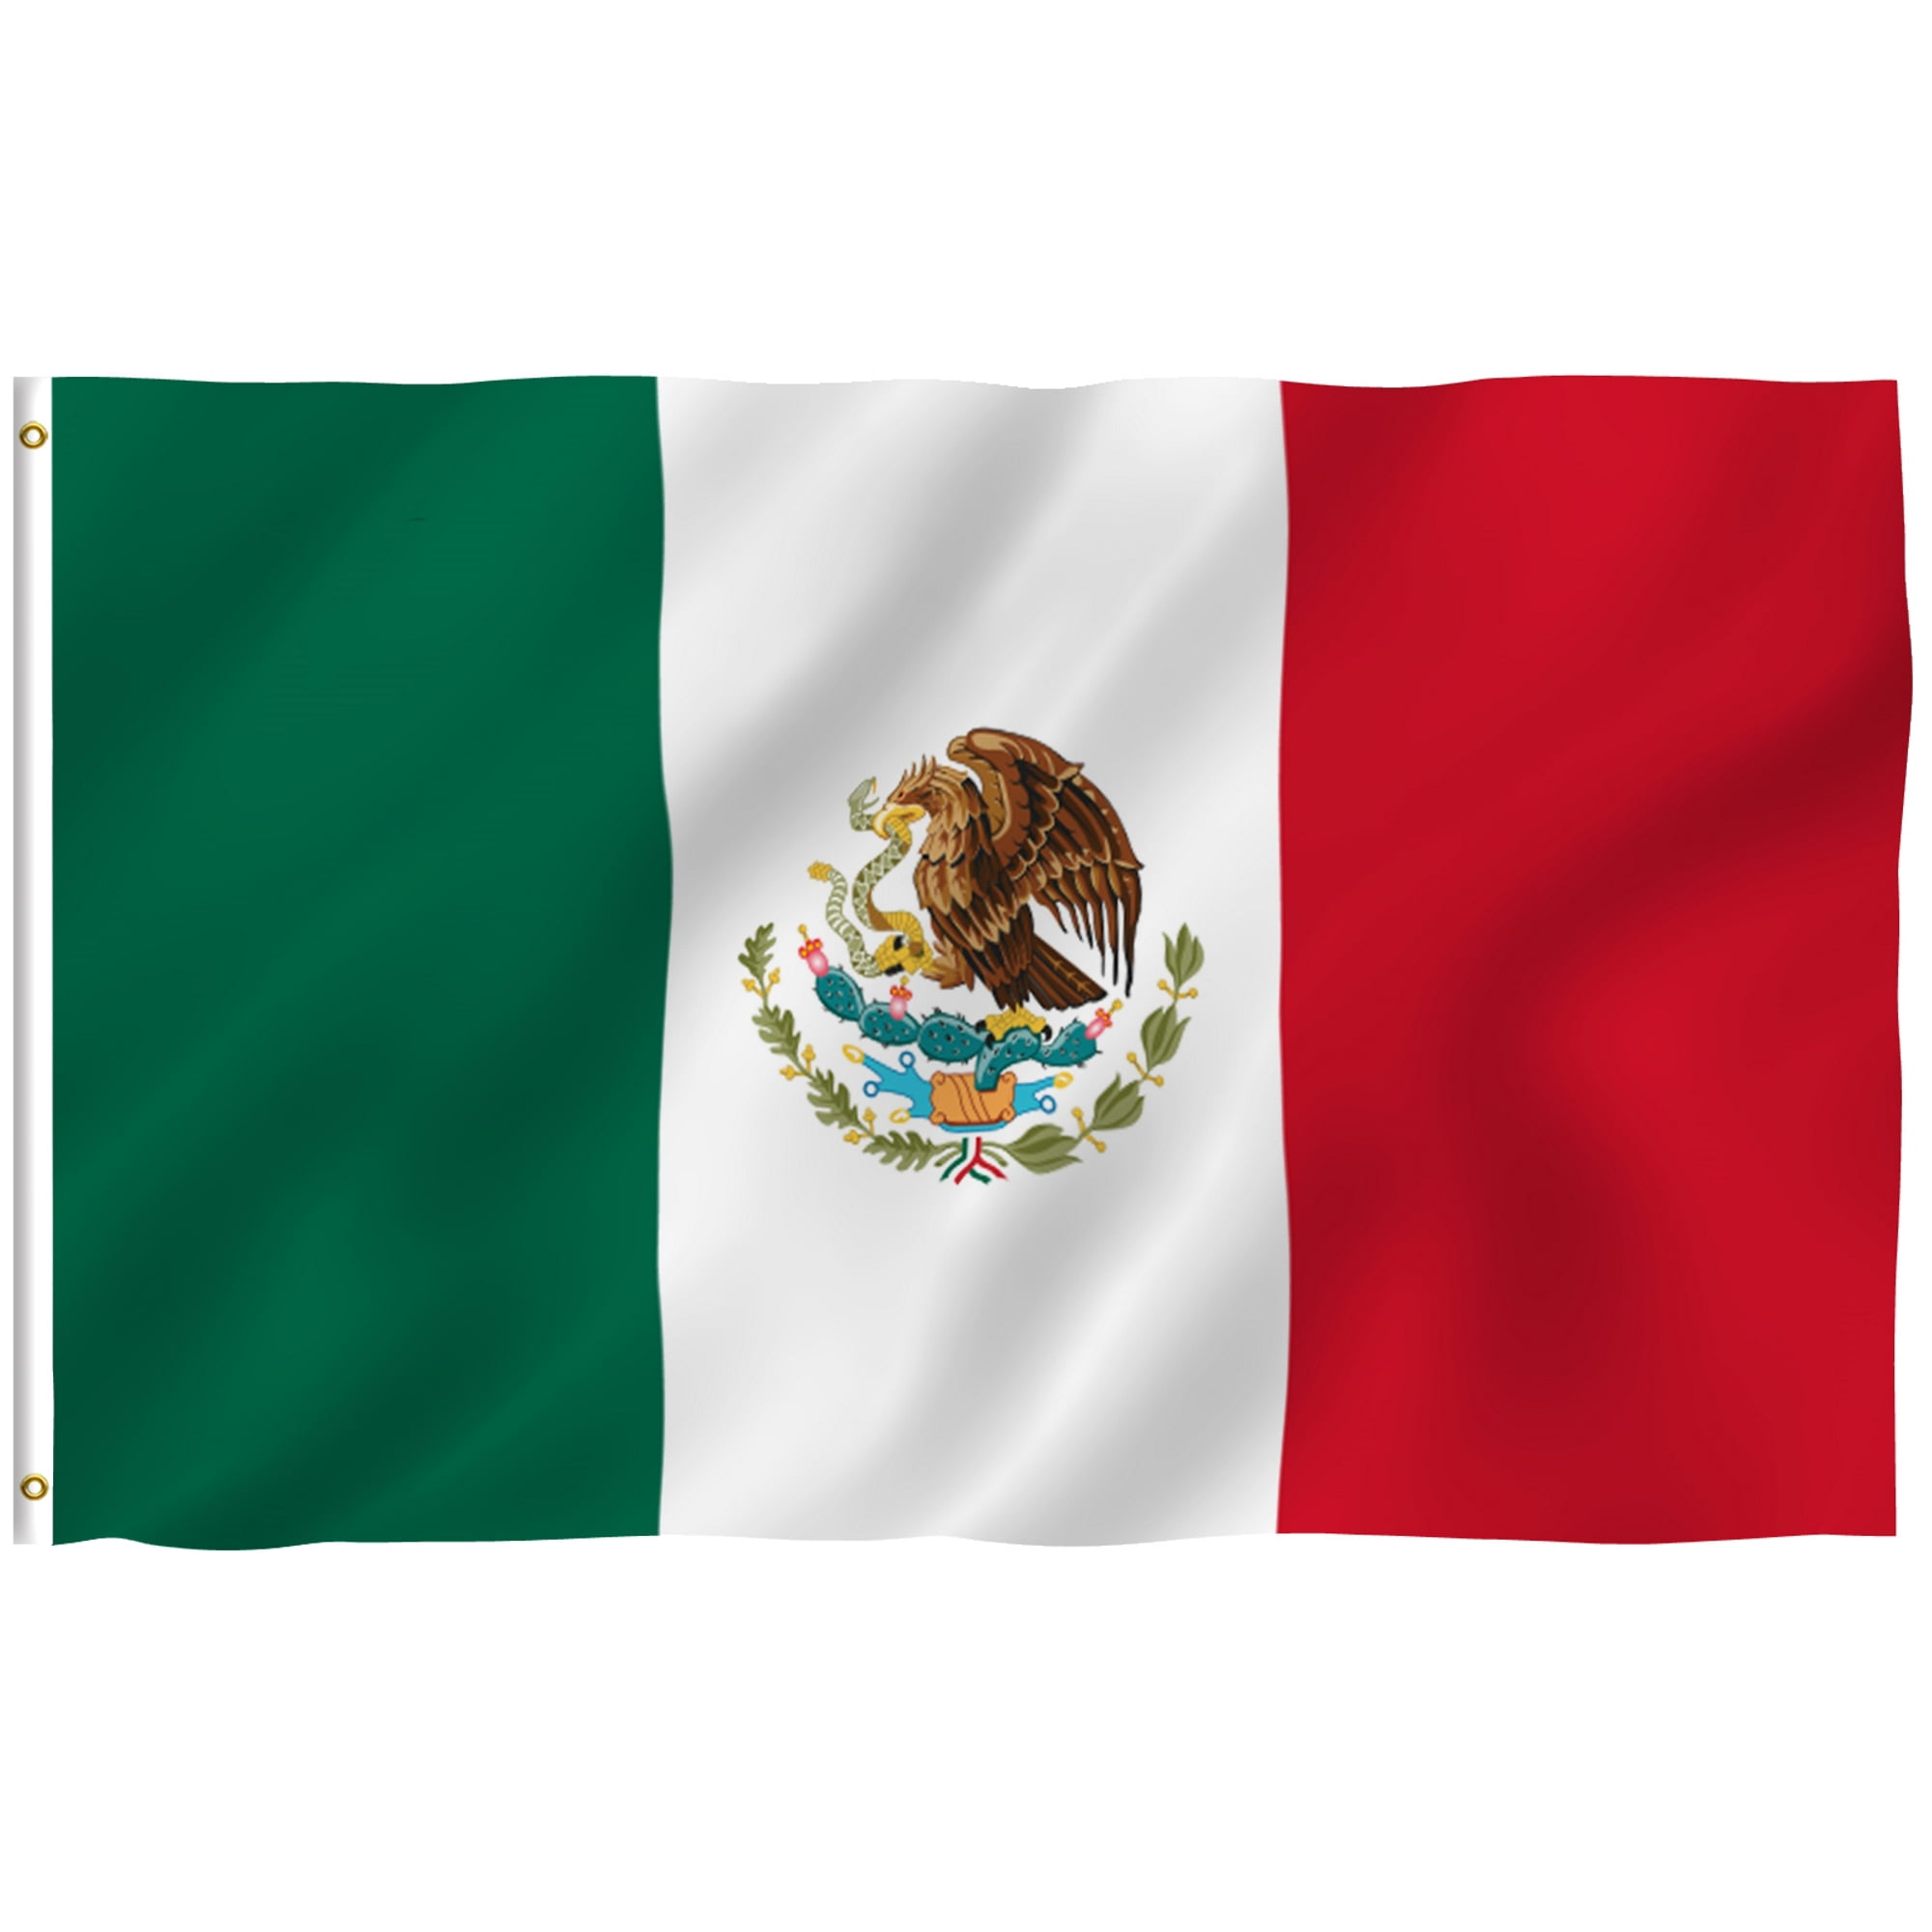 ANLEY [Fly Breeze] 3x5 Feet Mexican Flag Vivid Color and UV Fade Resistant... by ANLEY